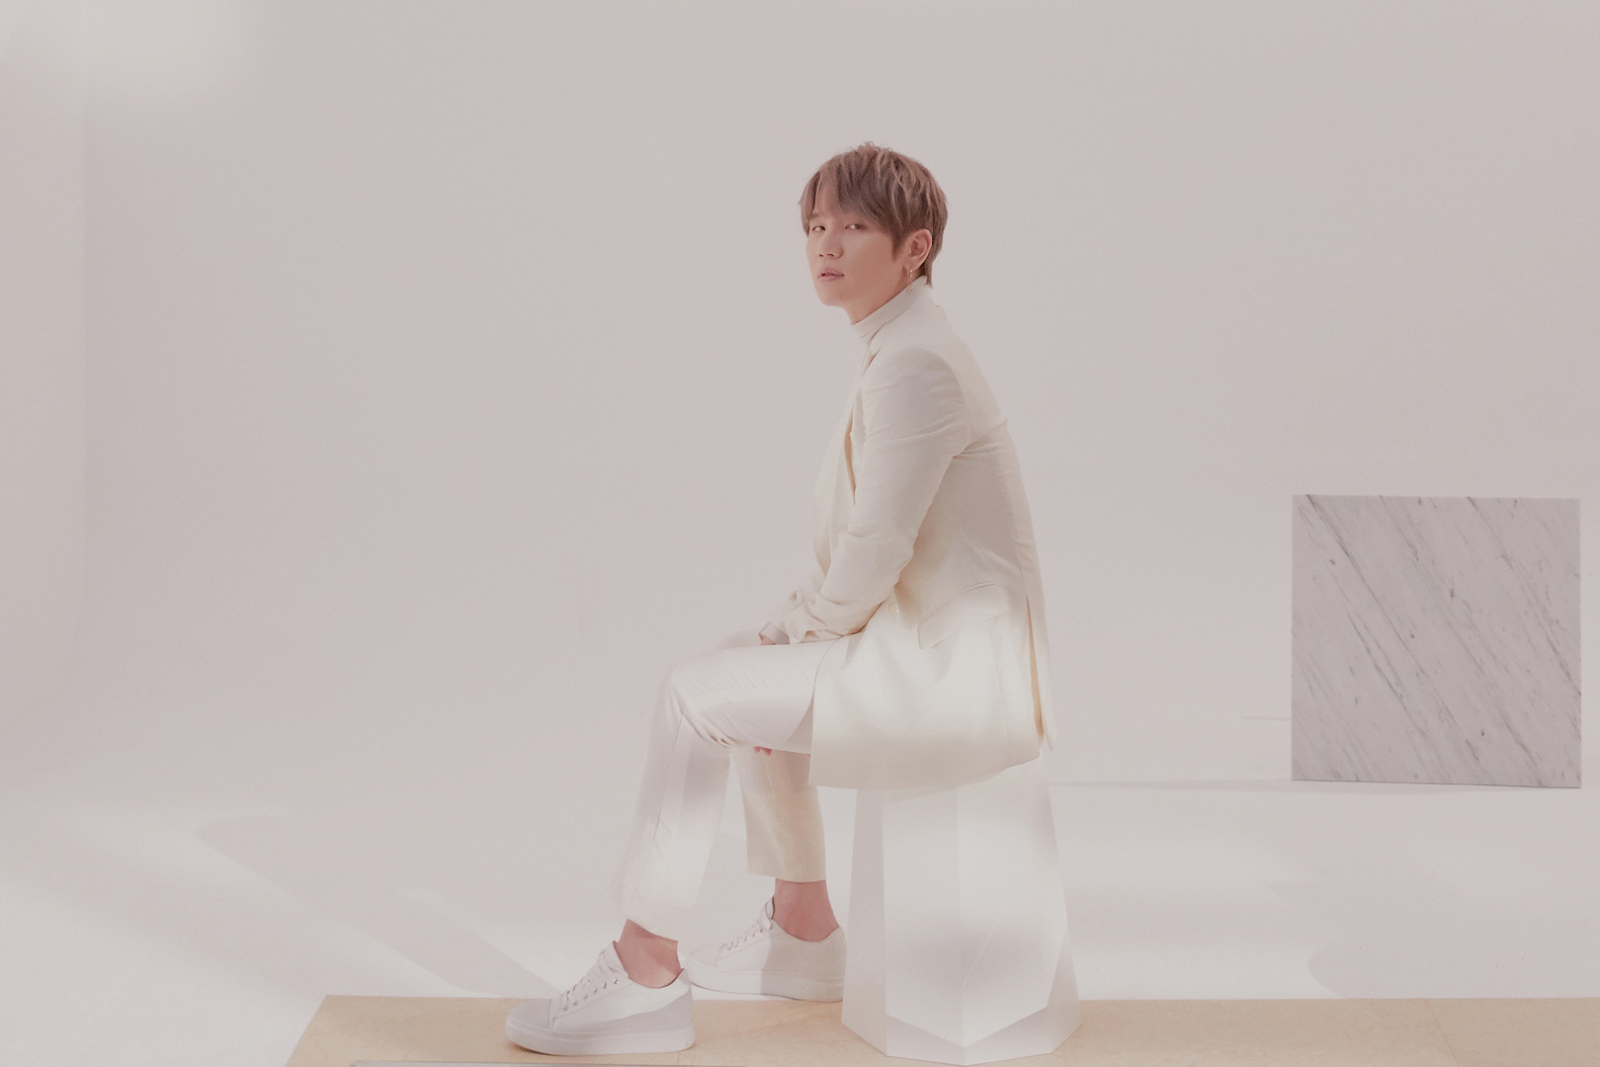 K.Will Renews His Contract With Starship Entertainment